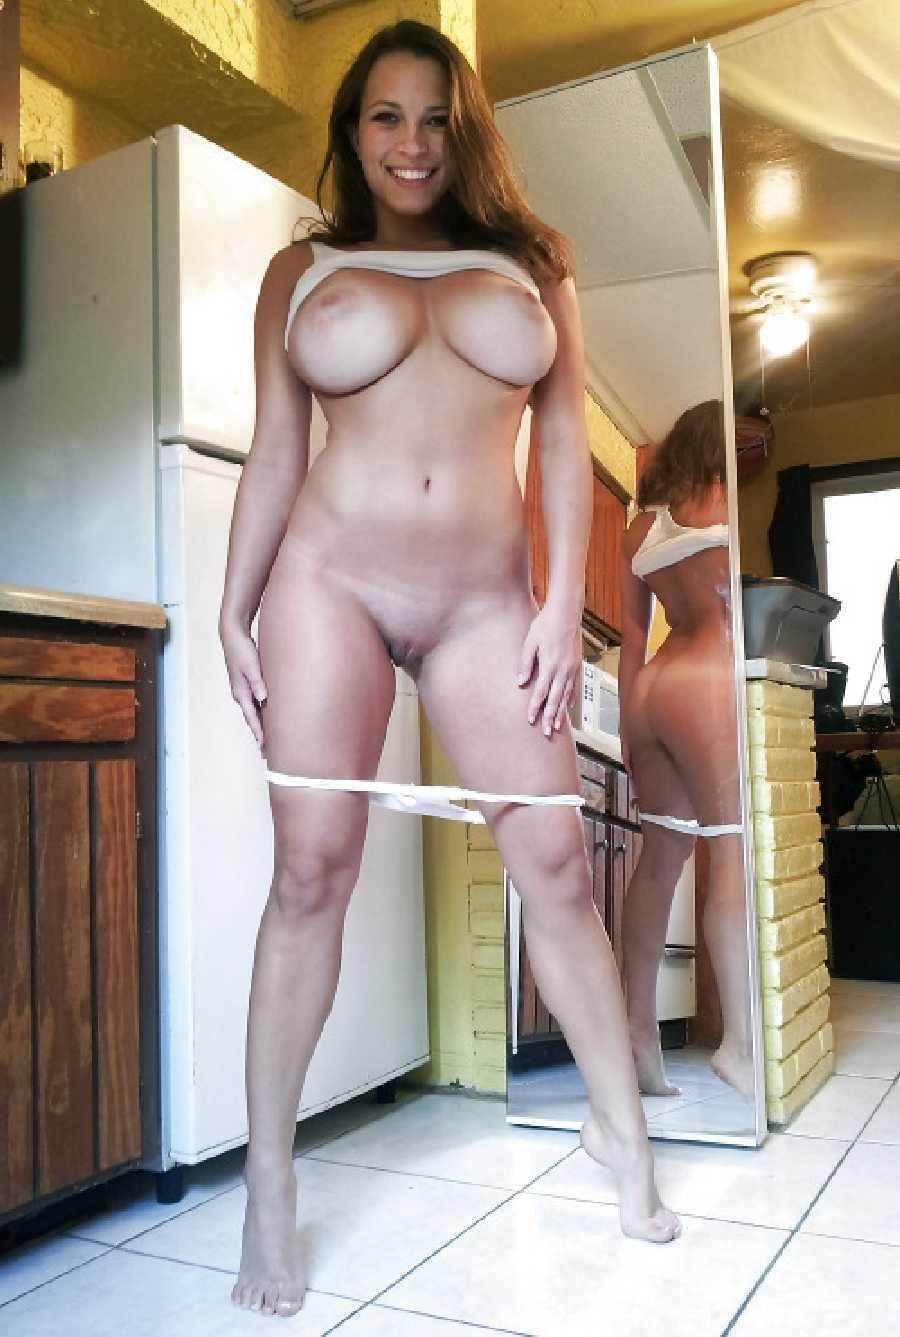 Busty Milf Porn Gallery the finest sexeist milf galleries . sex photo. comments: 1